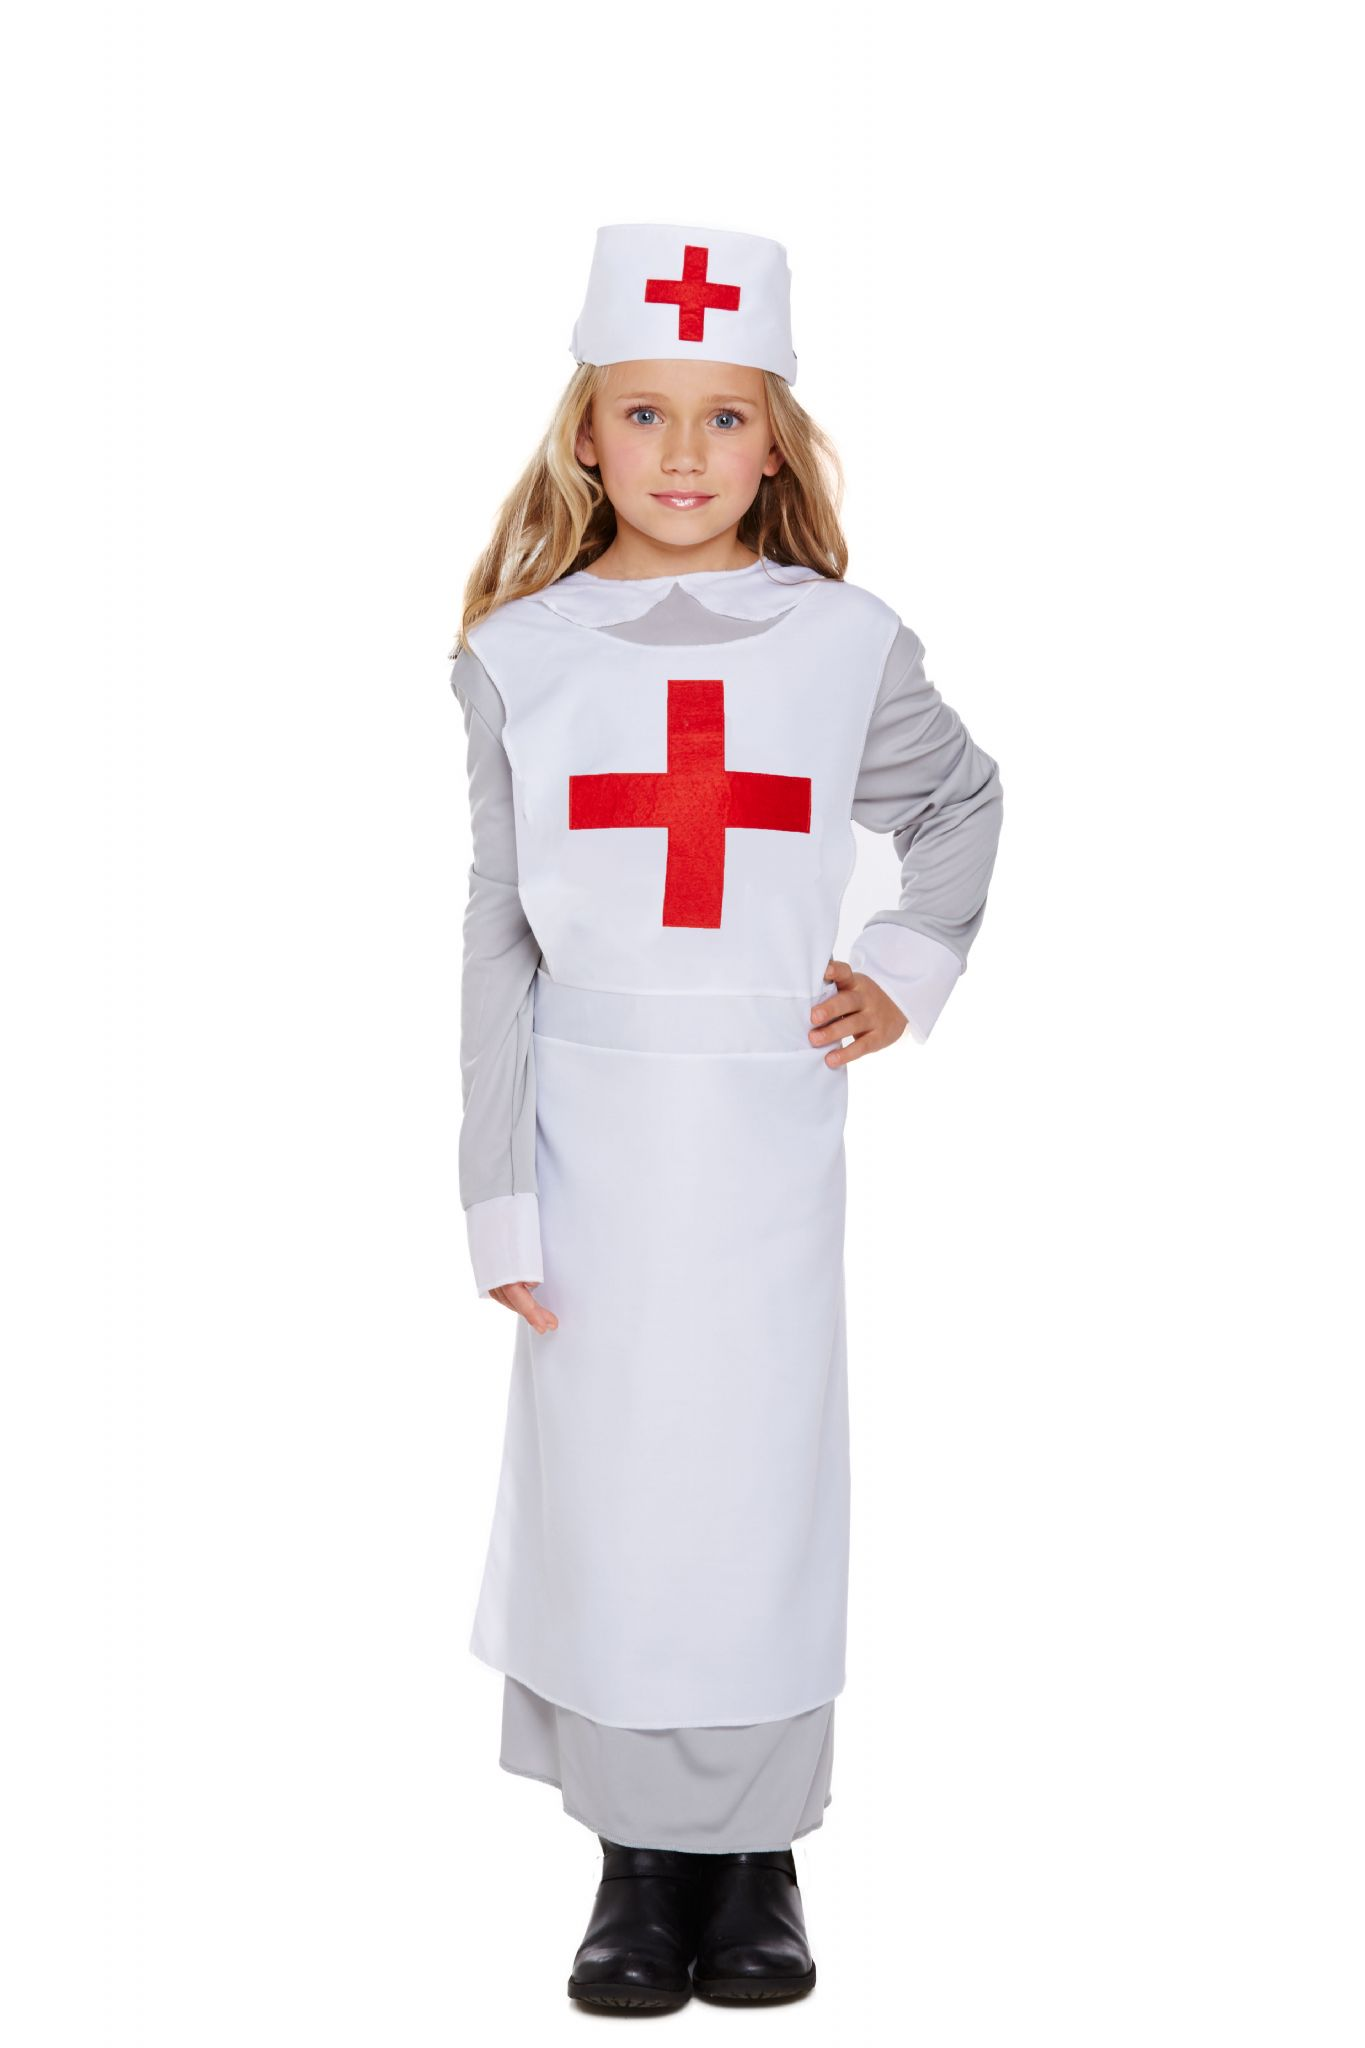 4c9a0393da0c3 girls-ww1-nurse-fancy-dress-costume-for-childrens-doctor-999-emergency-war- outfit-7-9-years-17797-p.jpg